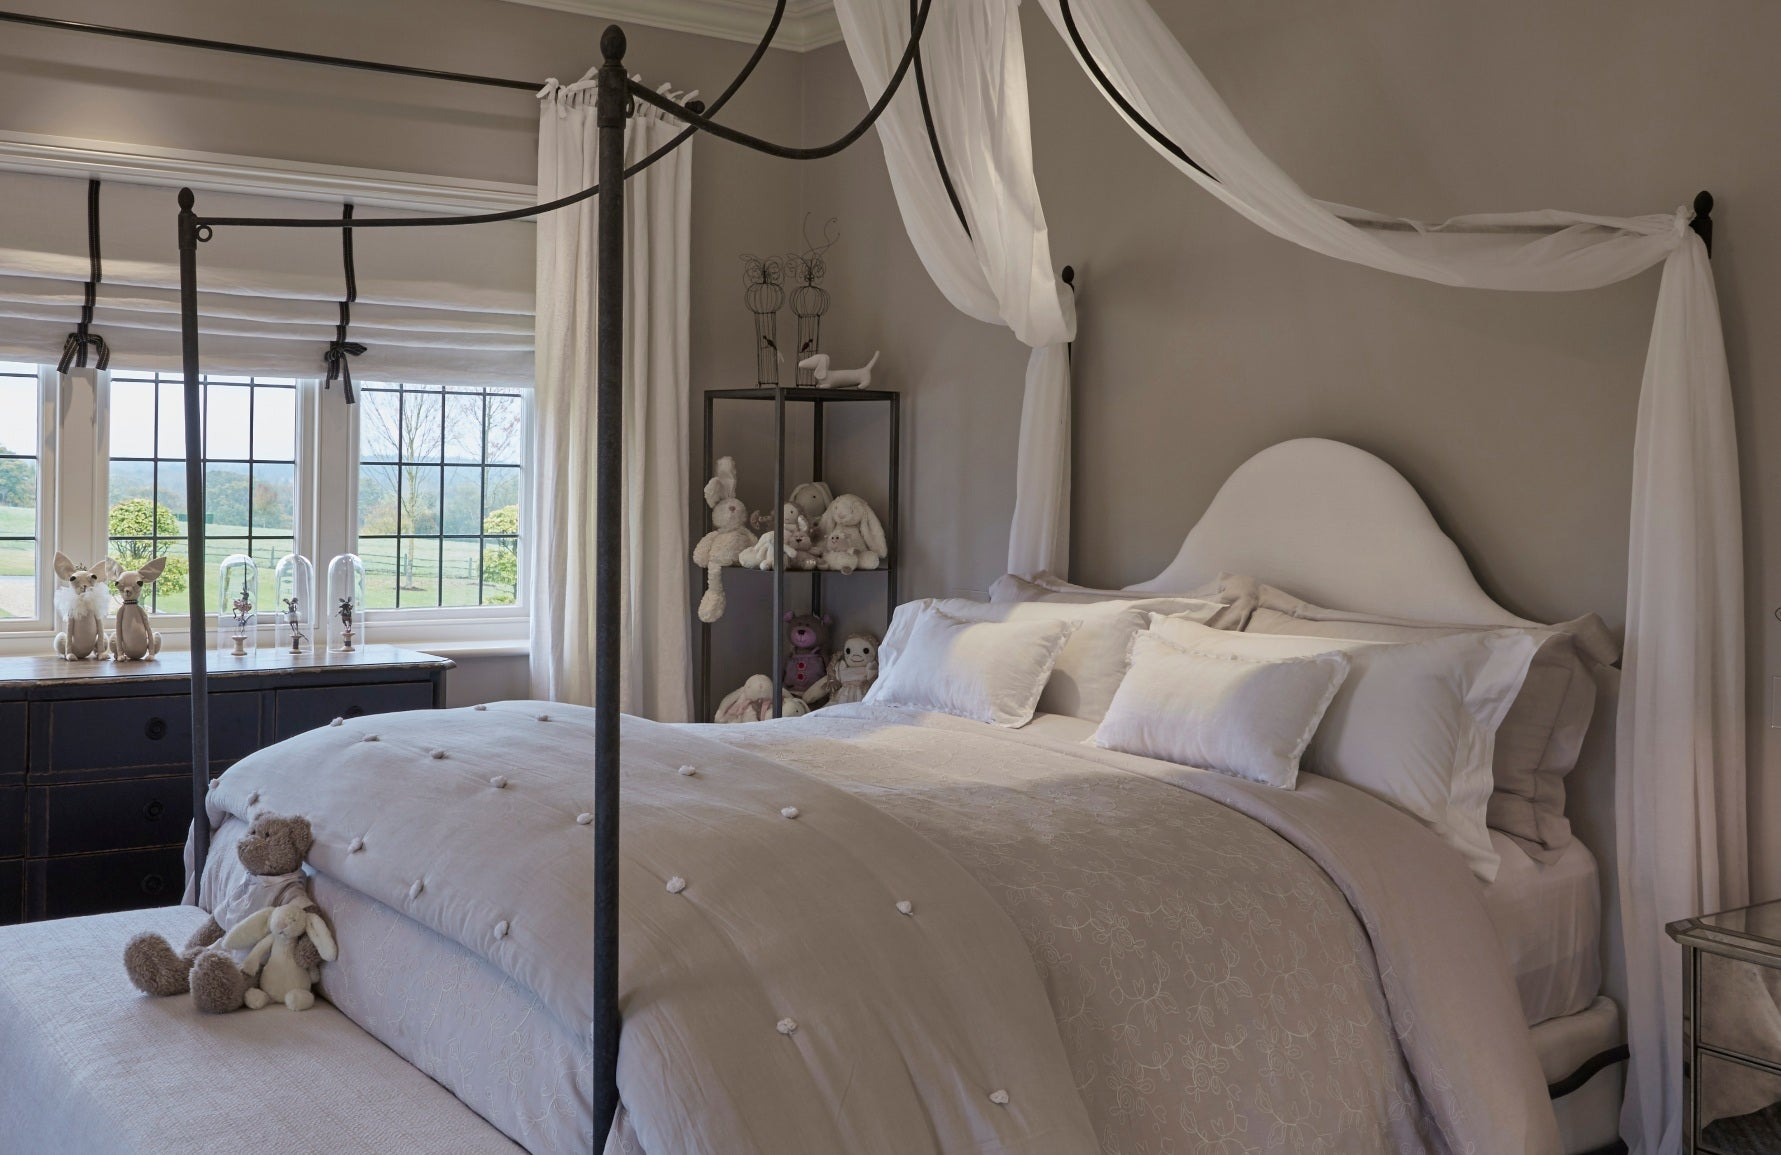 Childrens Bedroom Ideas - Girls bedroom ideas - Kids Bedroom Designs _ Louise Bradley _ Read more in the LuxDeco.com Style Guide